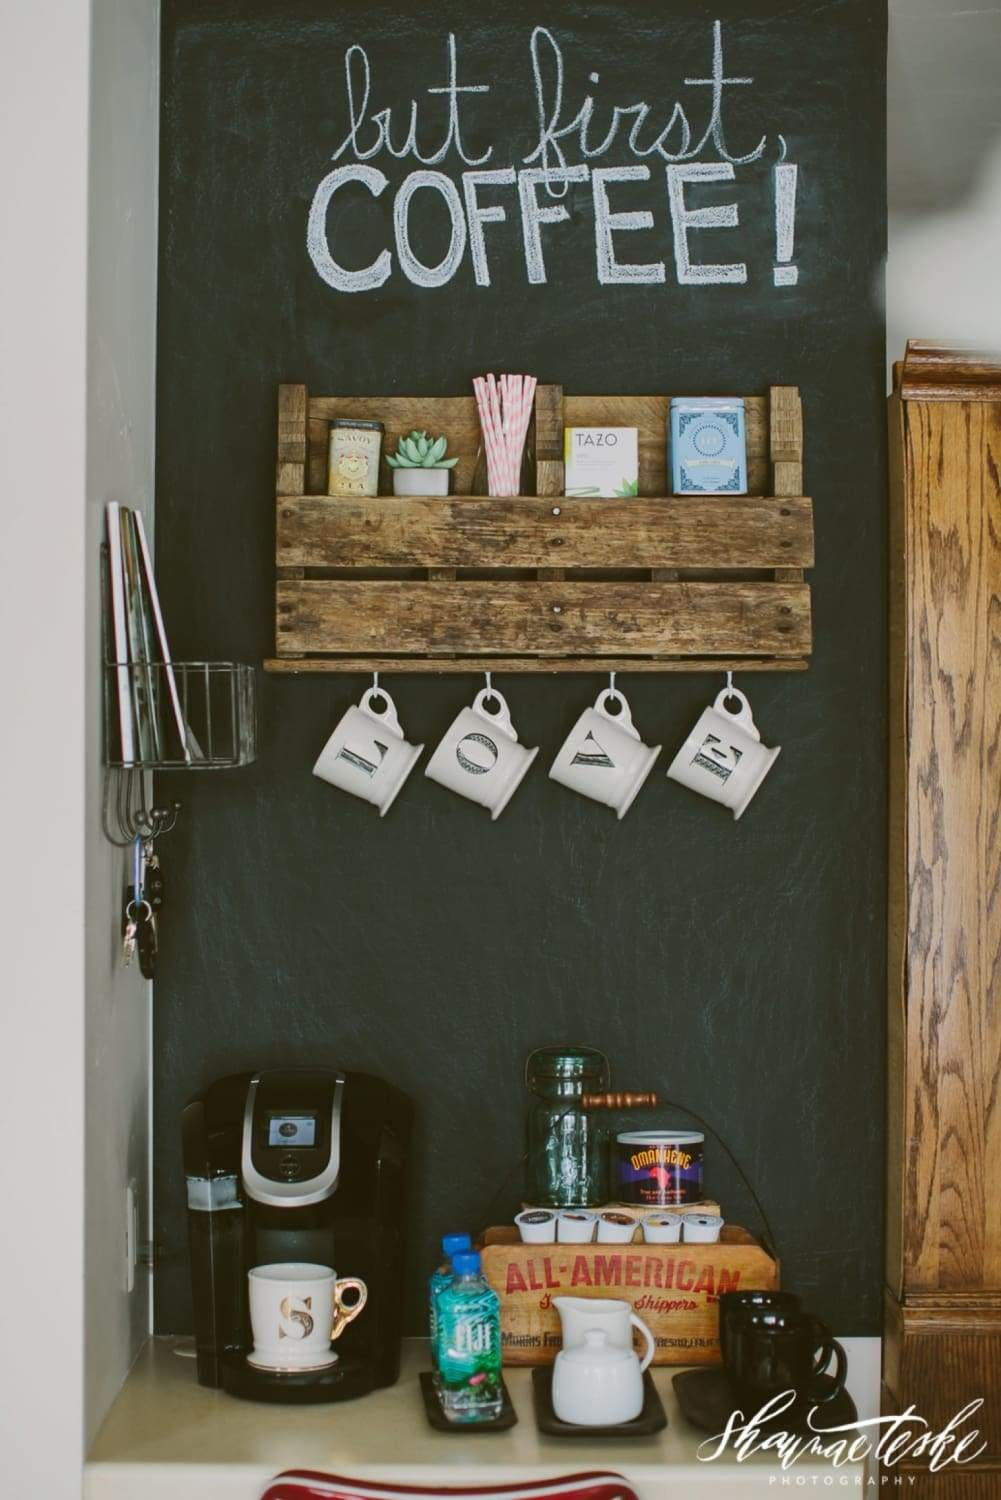 Check out this fun coffee station and learn how you could build one of your own.